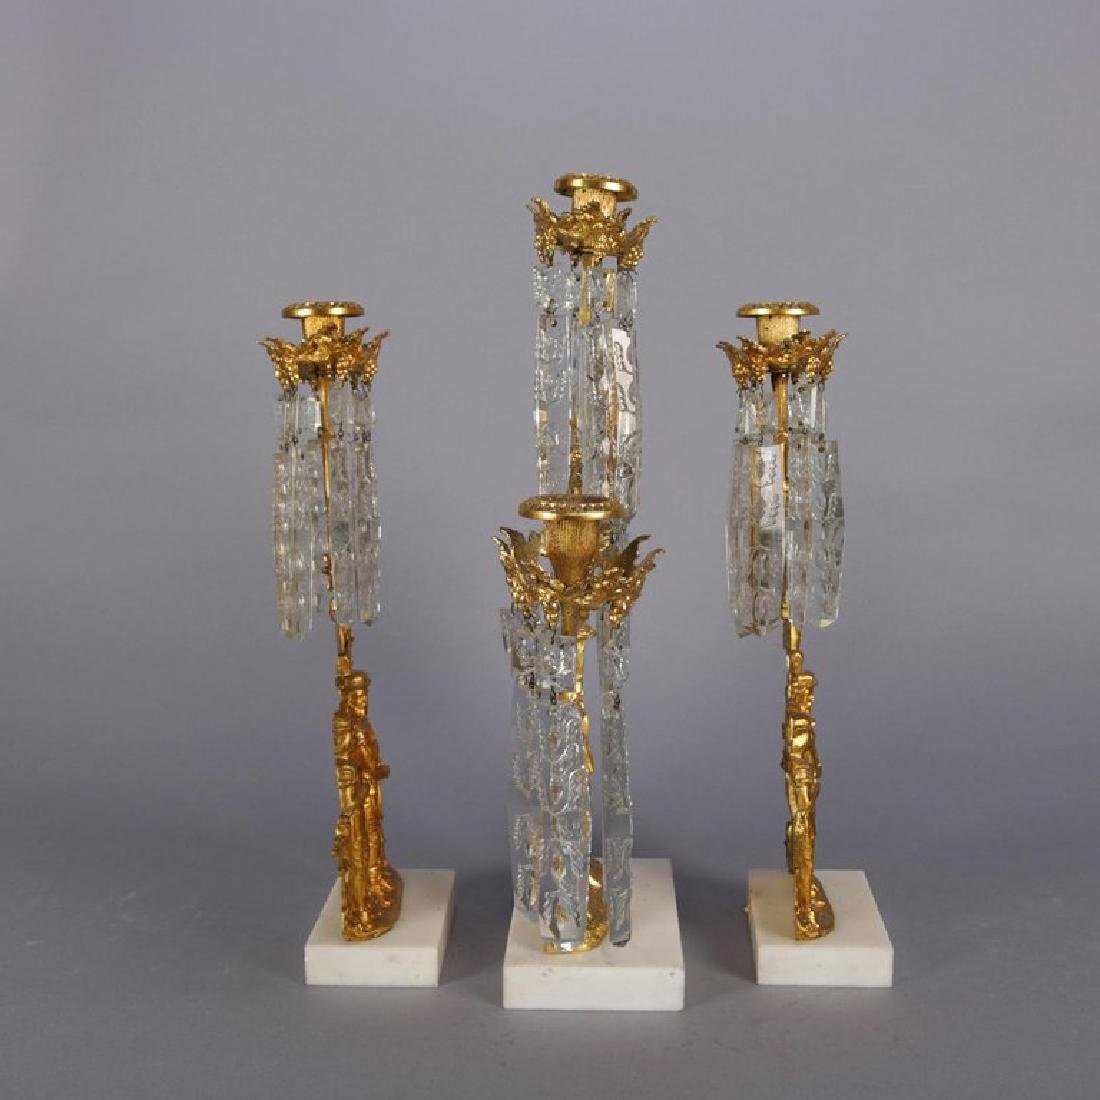 Antique French Gilt Metal, Marble and Crystal Girandole - 9